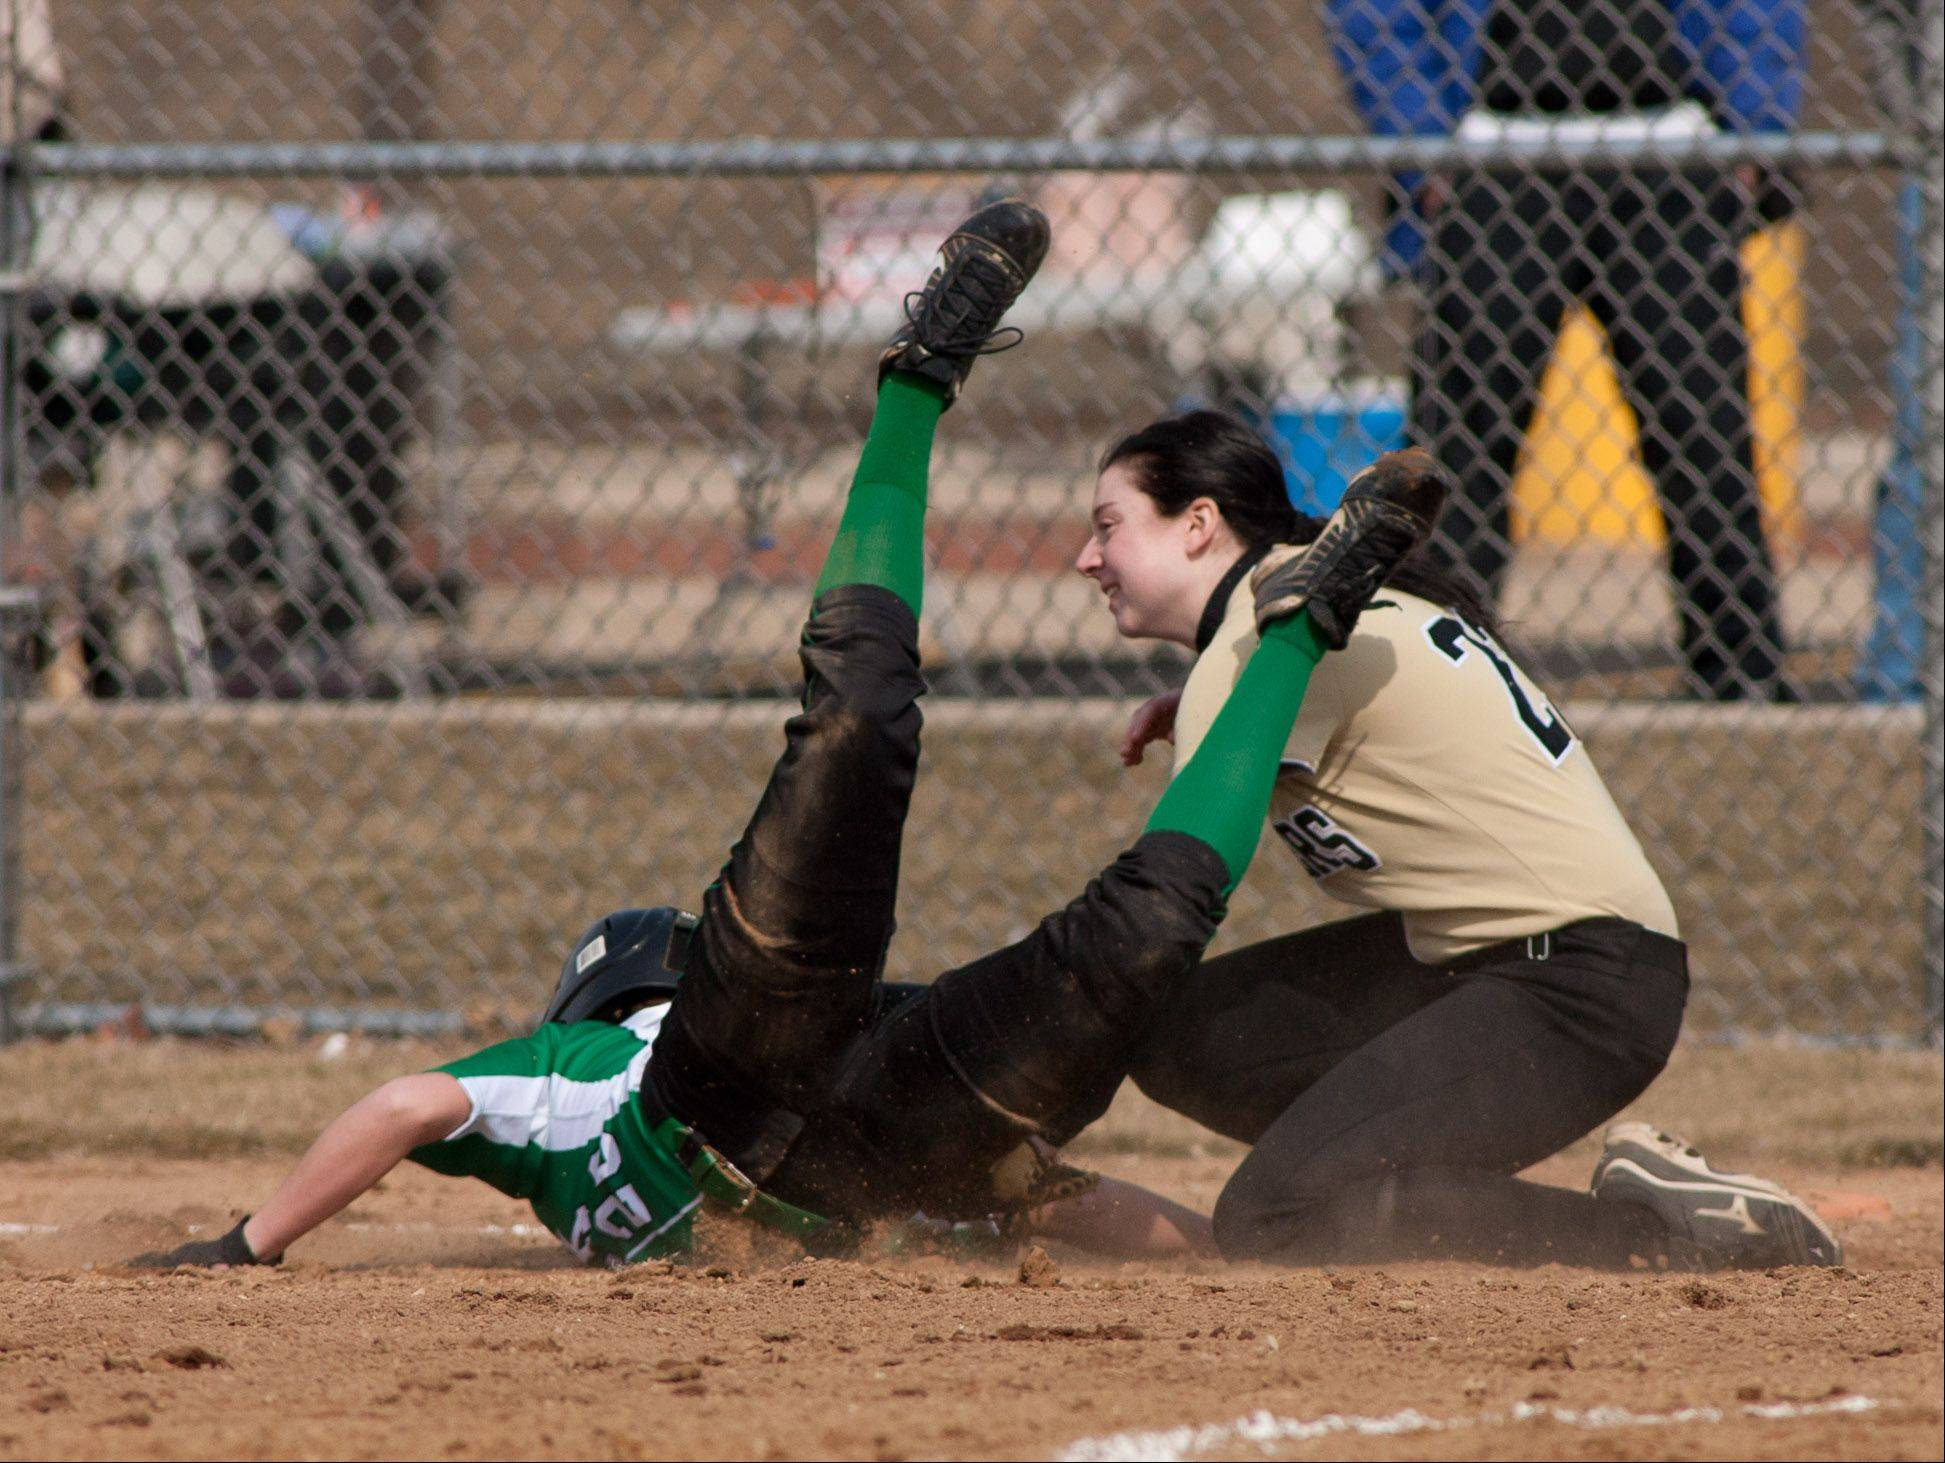 York's Gracie Sullivan slides safely back into first base, under the tag of Glenbard North's Heather Sperlazzo, during girls softball action.